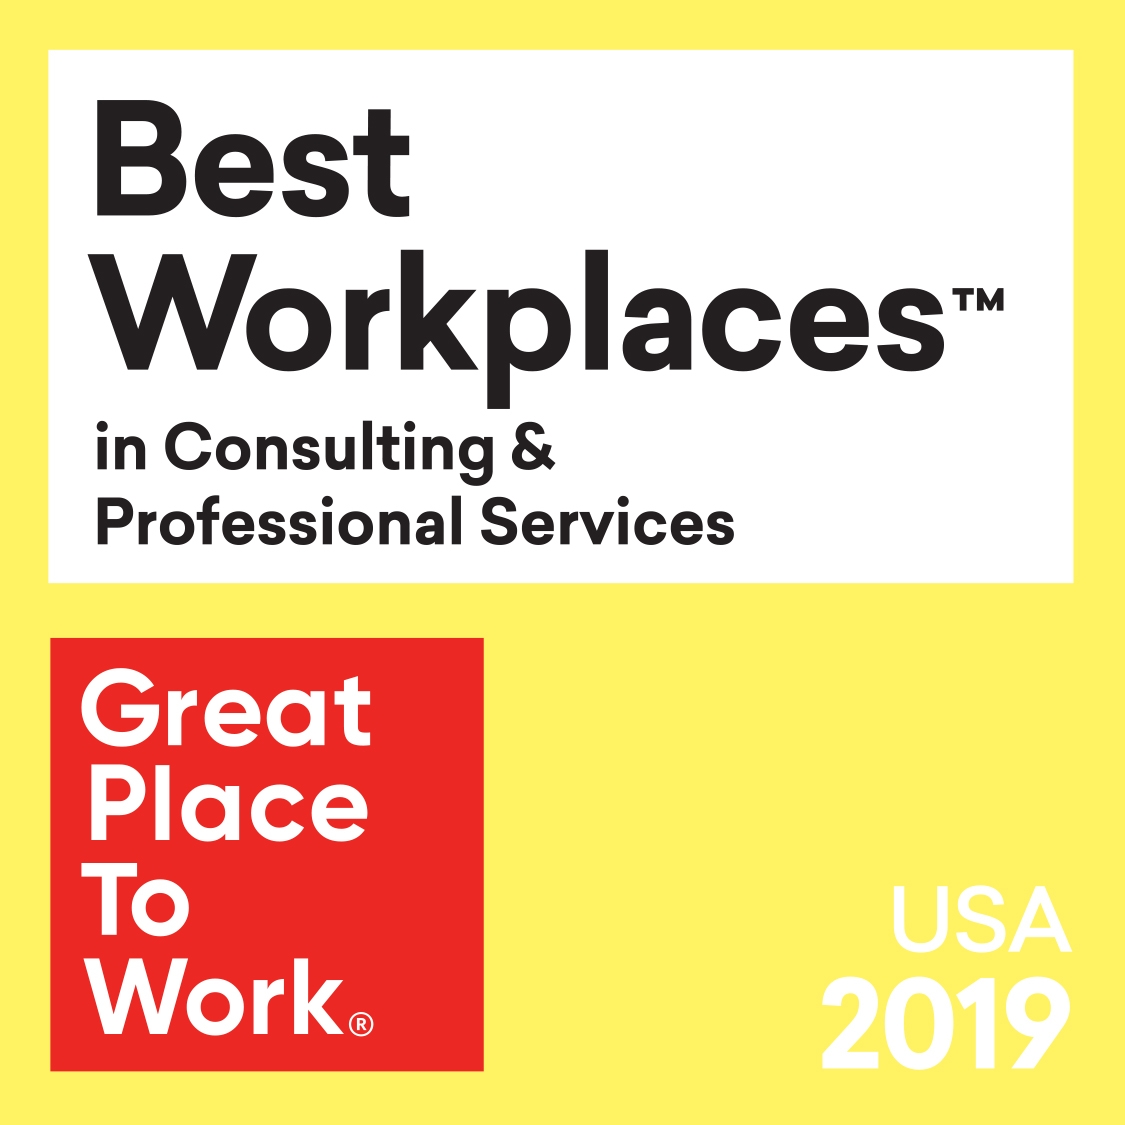 award Best Workplaces in Consulting & Professional Services, Great Place to Work